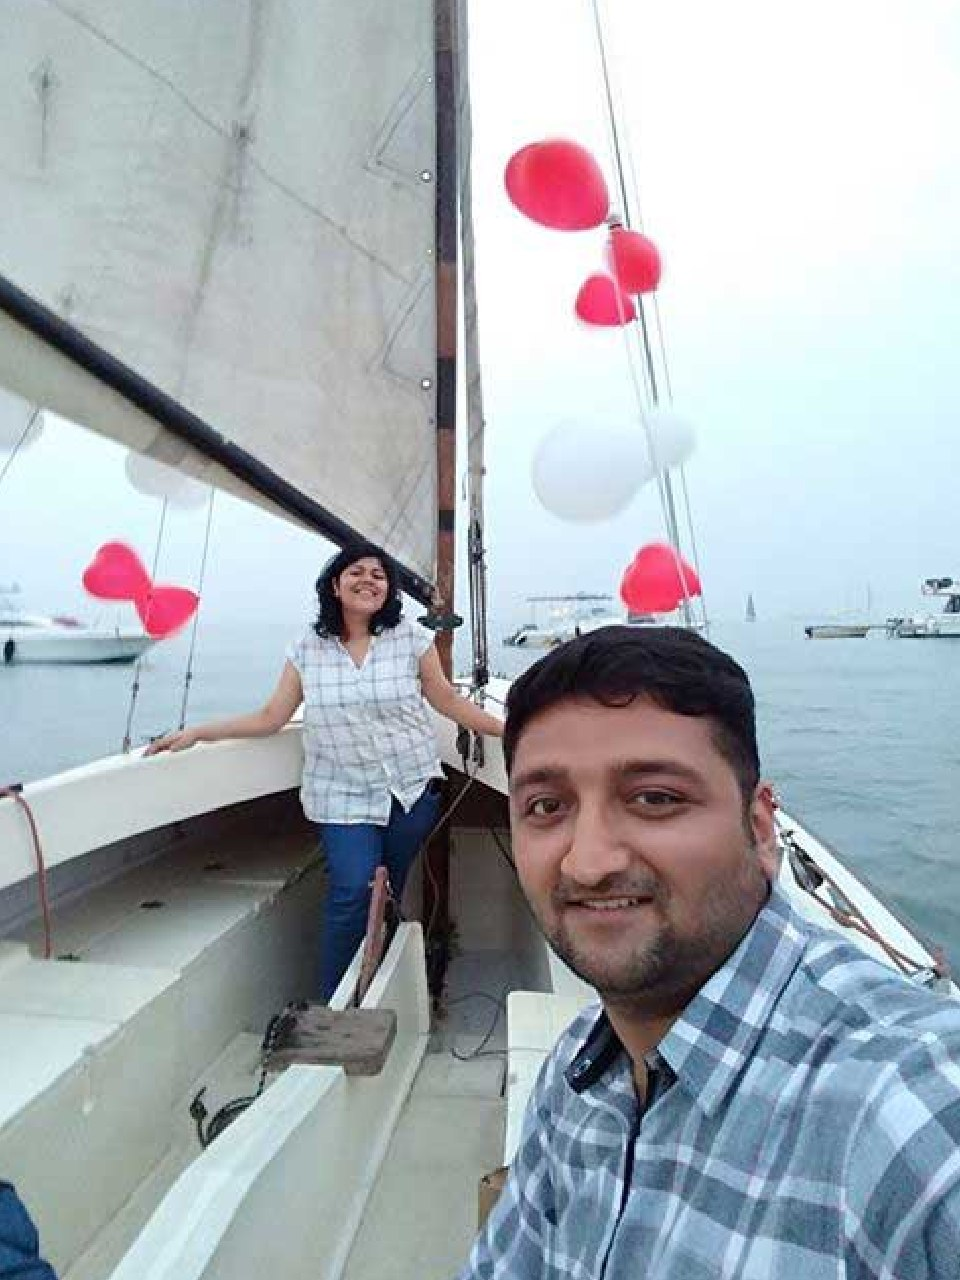 Romantic Date - Yachts For Couples at Gateway of India, Mumbai